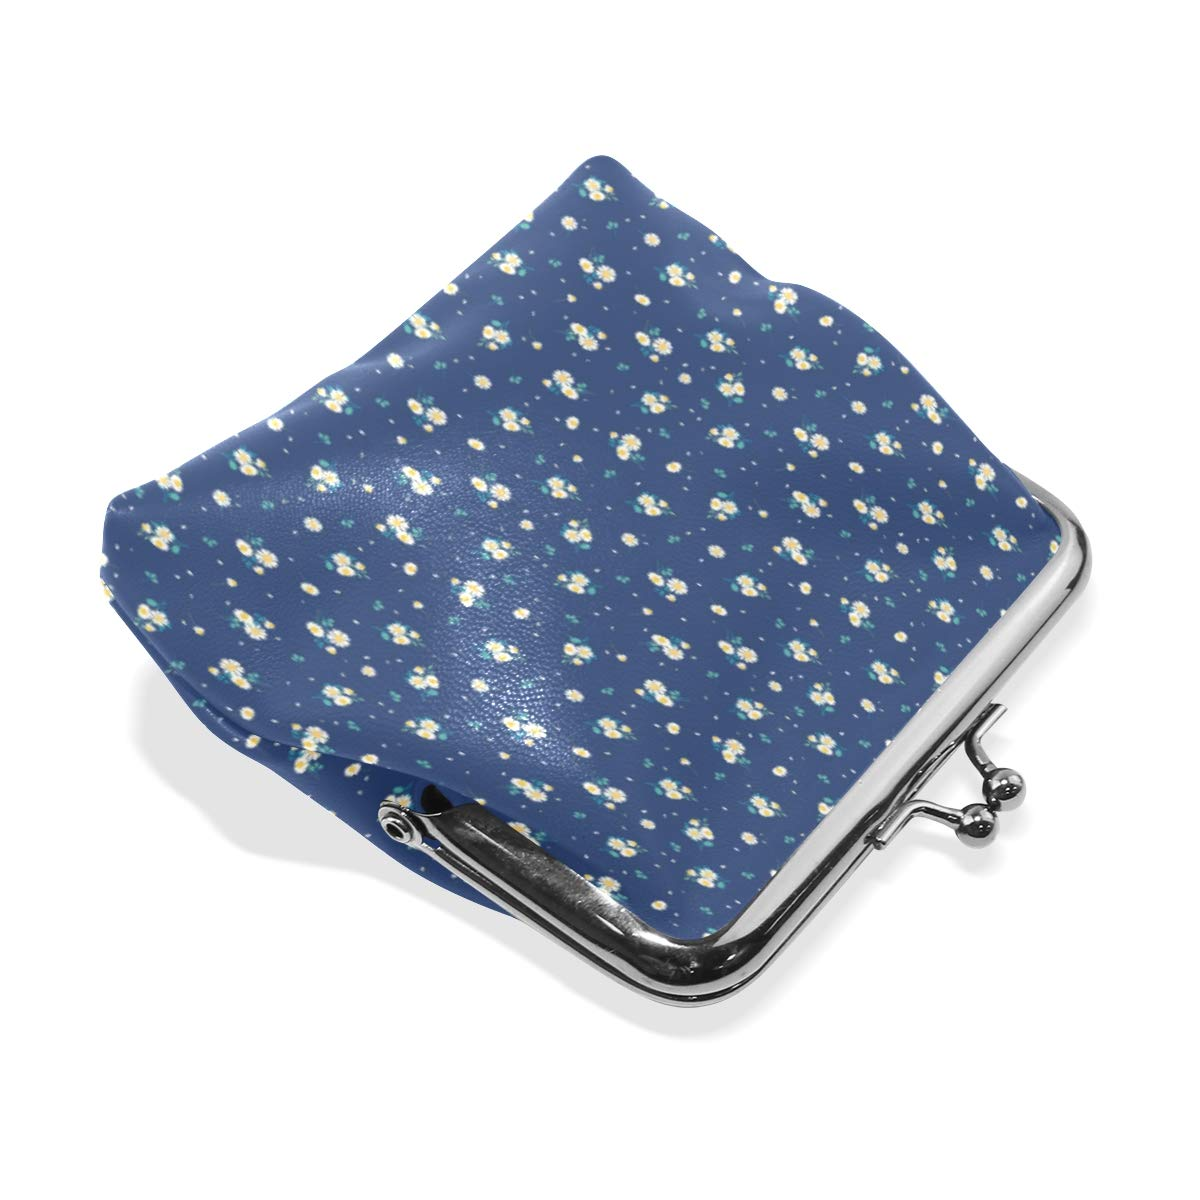 Exquisite Buckle Coin Purses Sweet Daisies Pattern Dedign Vector Mini Wallet Key Card Holder Purse for Women